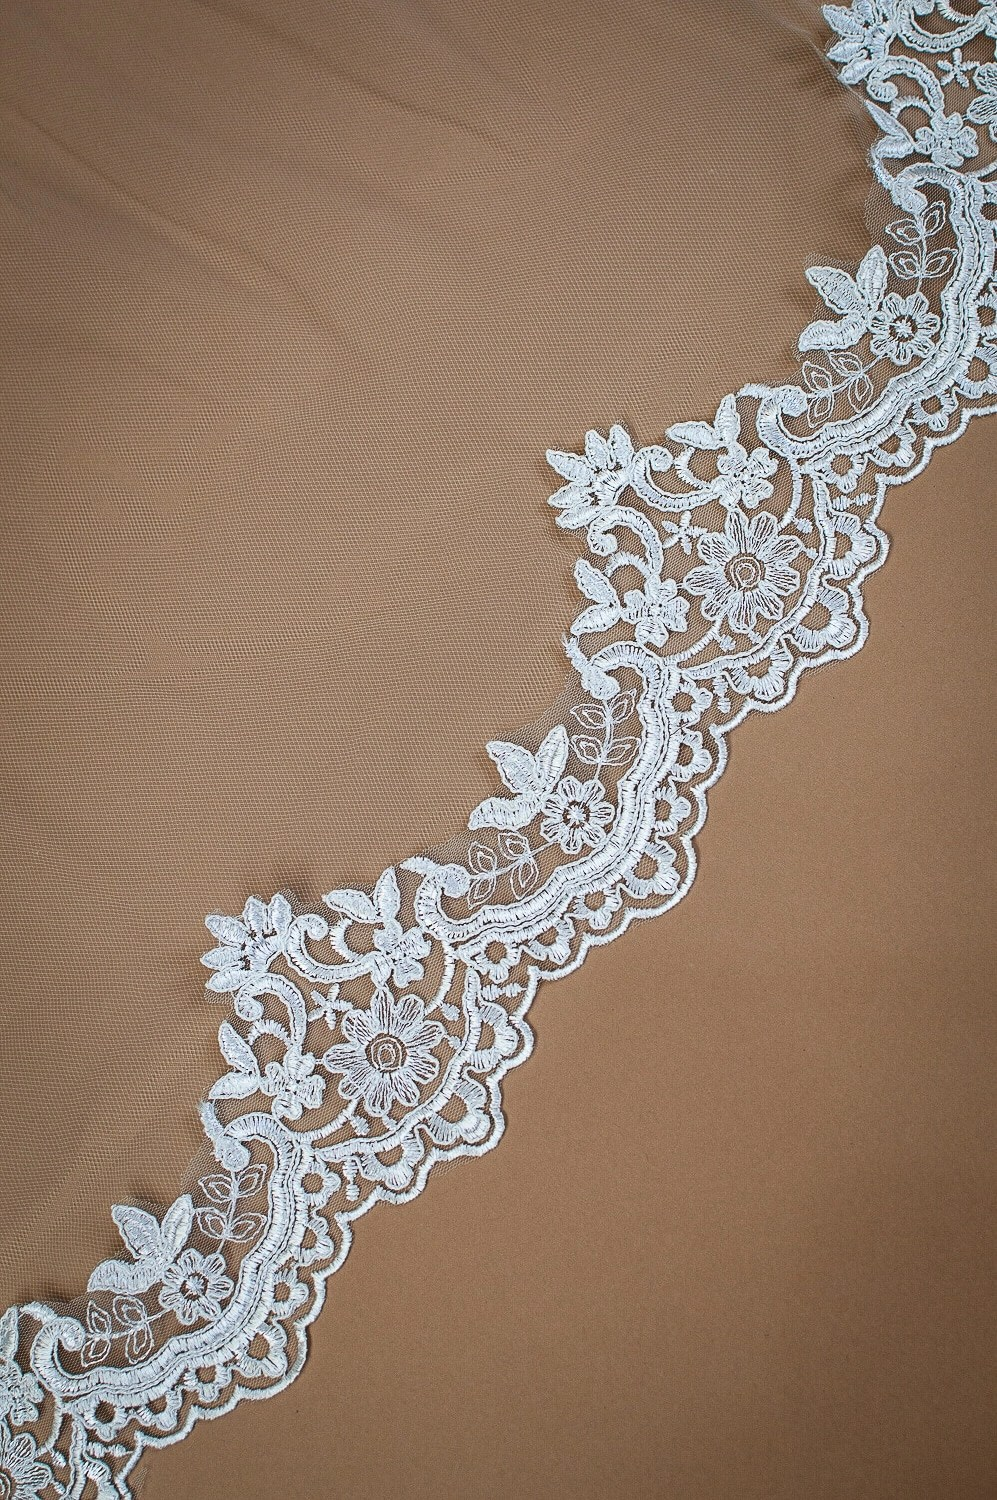 Harmony - single layer chapel length lace edged mantilla veil with comb closeup on solid background